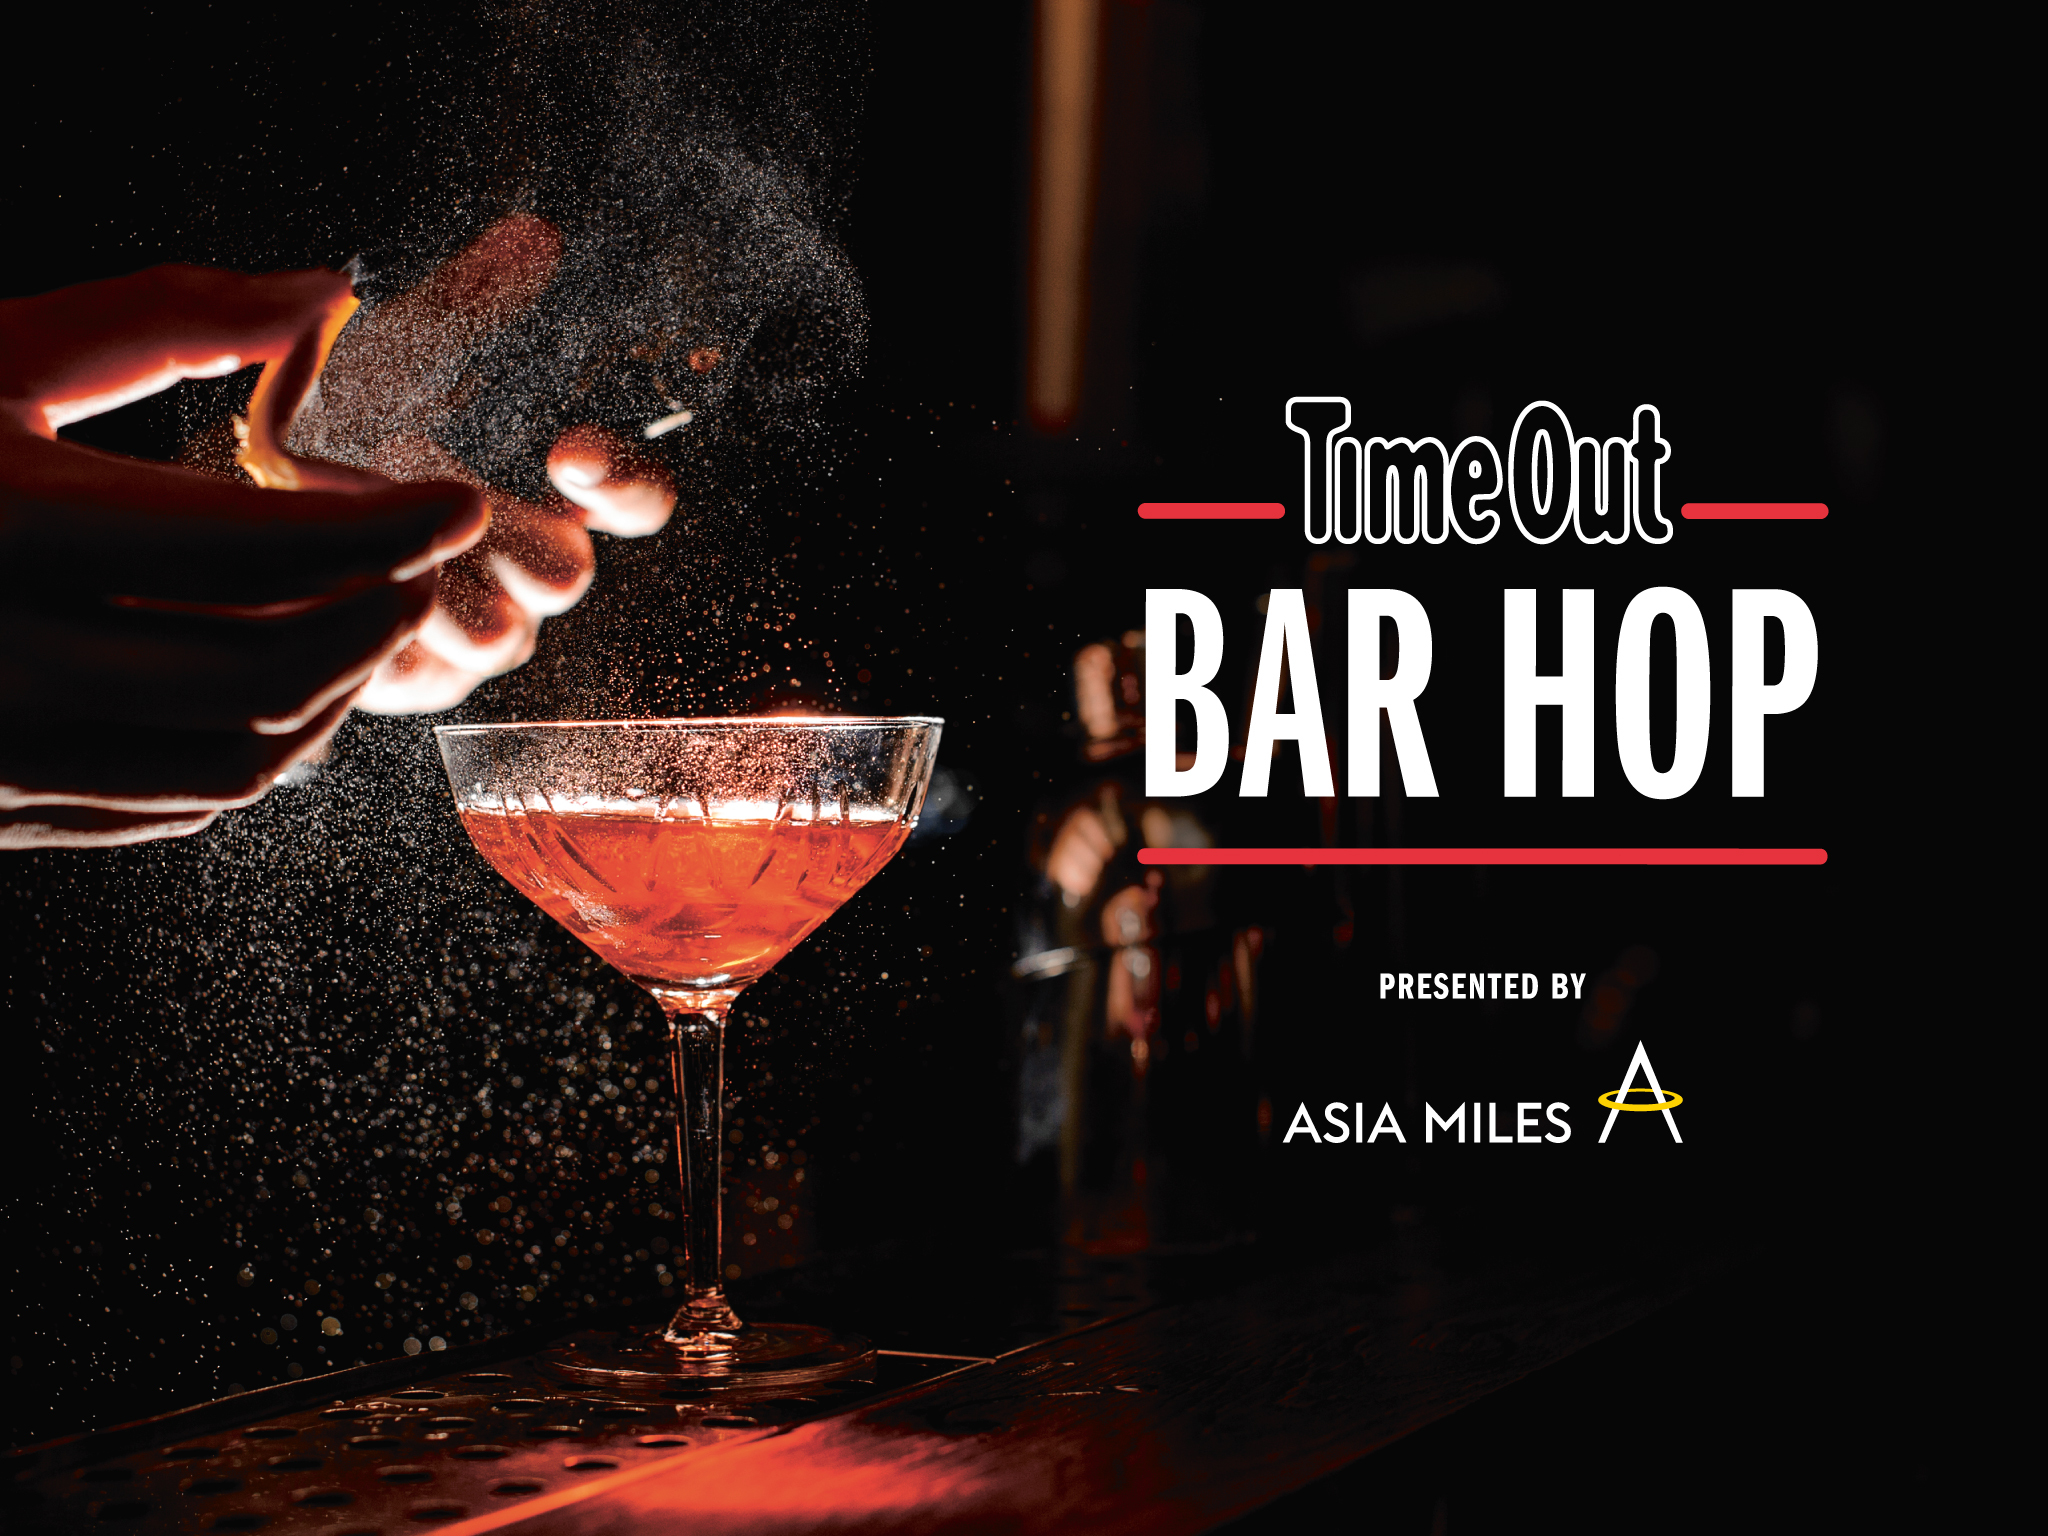 Time Out Bar Hop